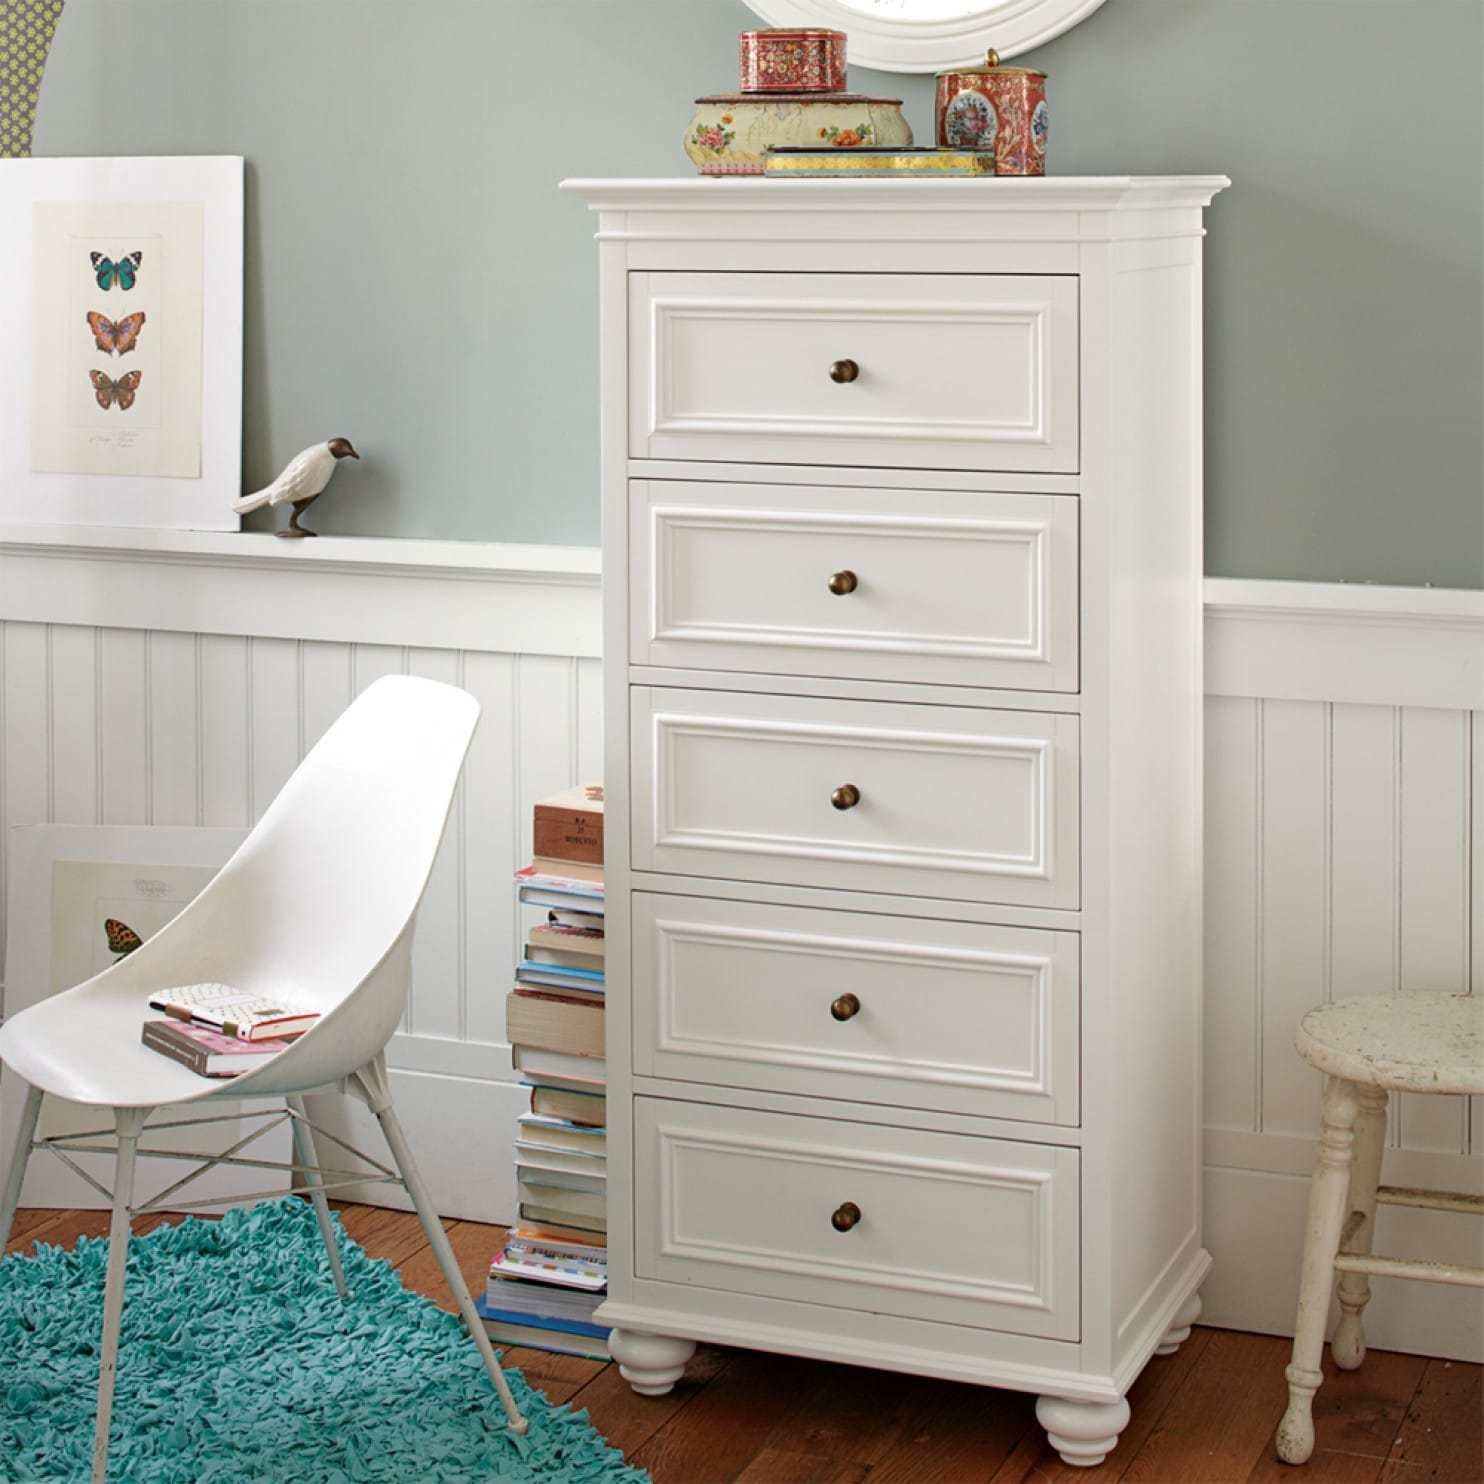 Best Creative Dresser Options For Small Spaces The Washington With Pictures